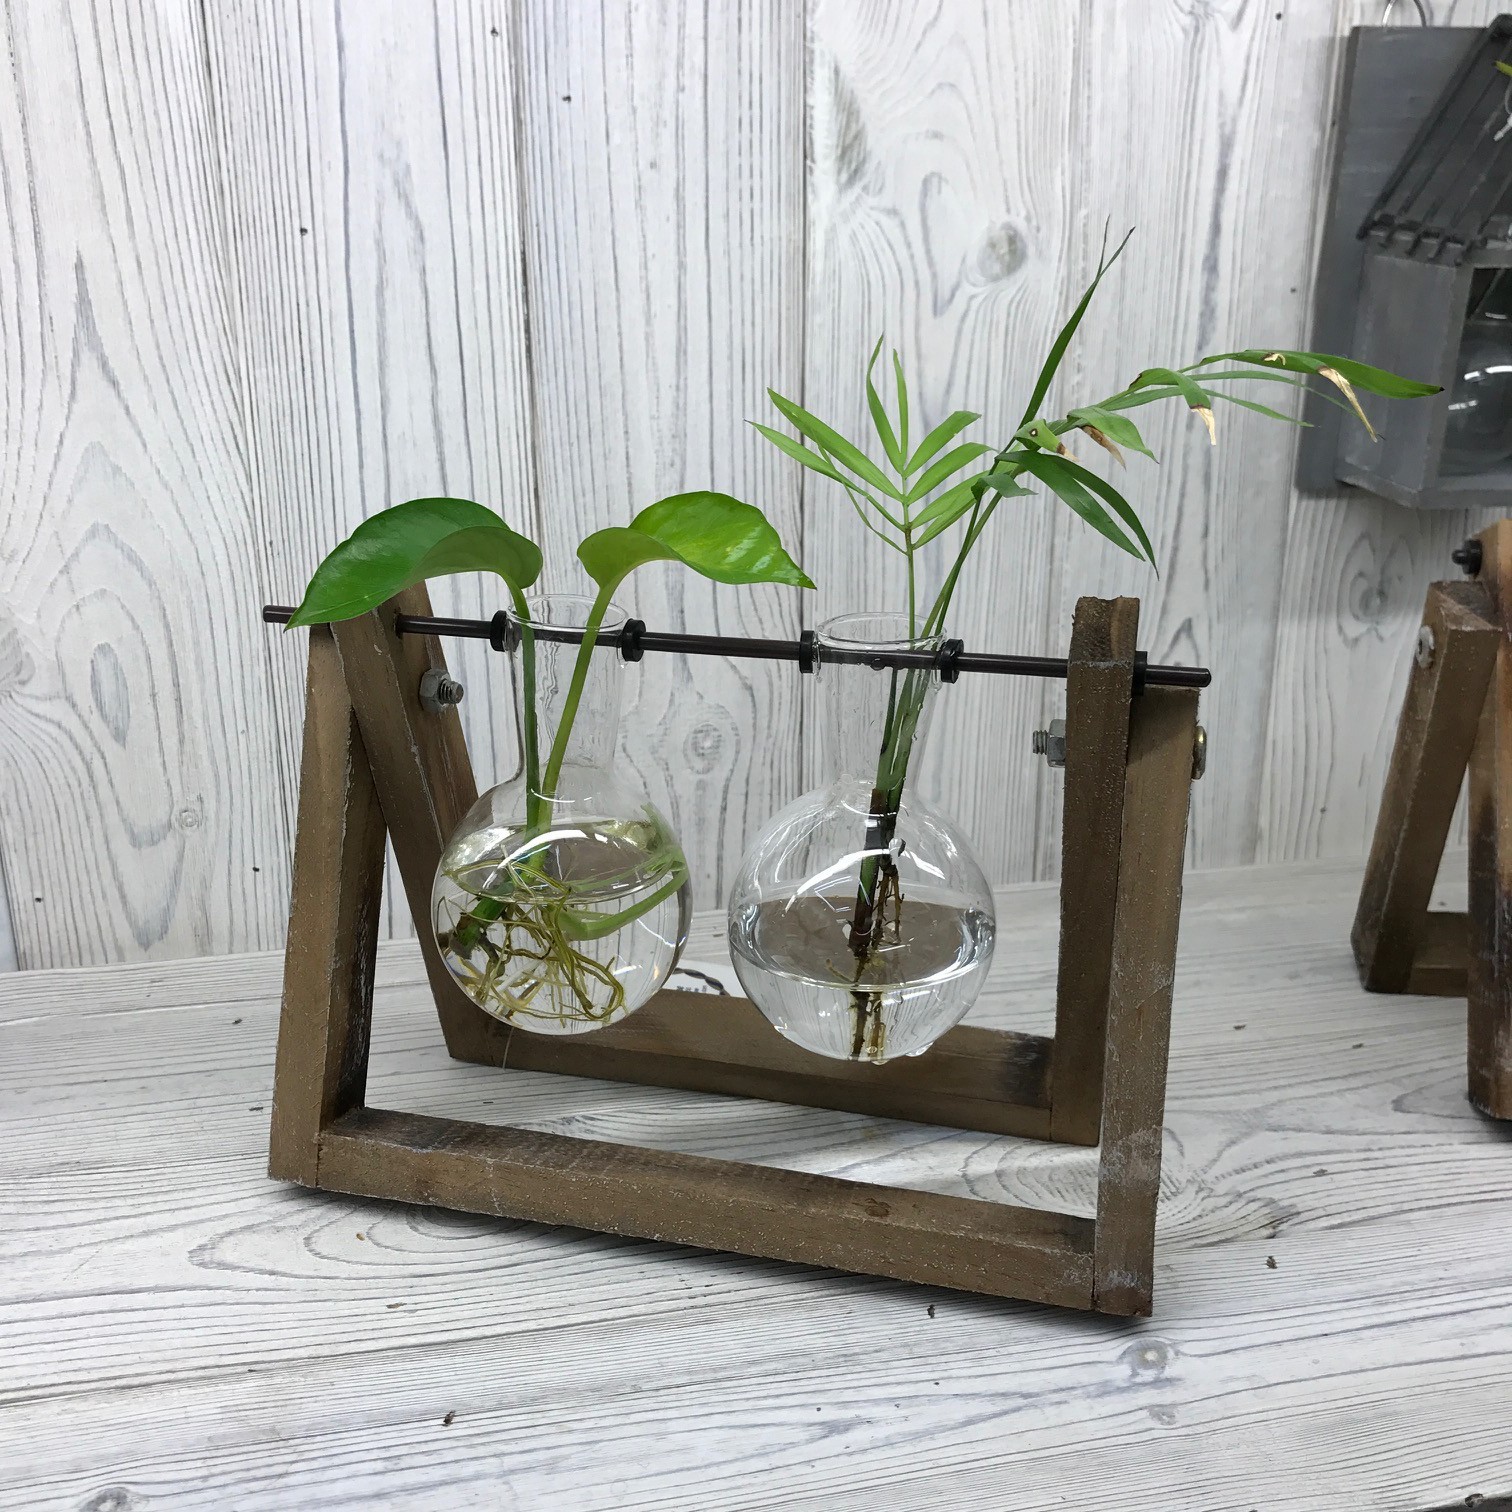 Hydroponic Home D�cor - Two Pot Wooden Stand